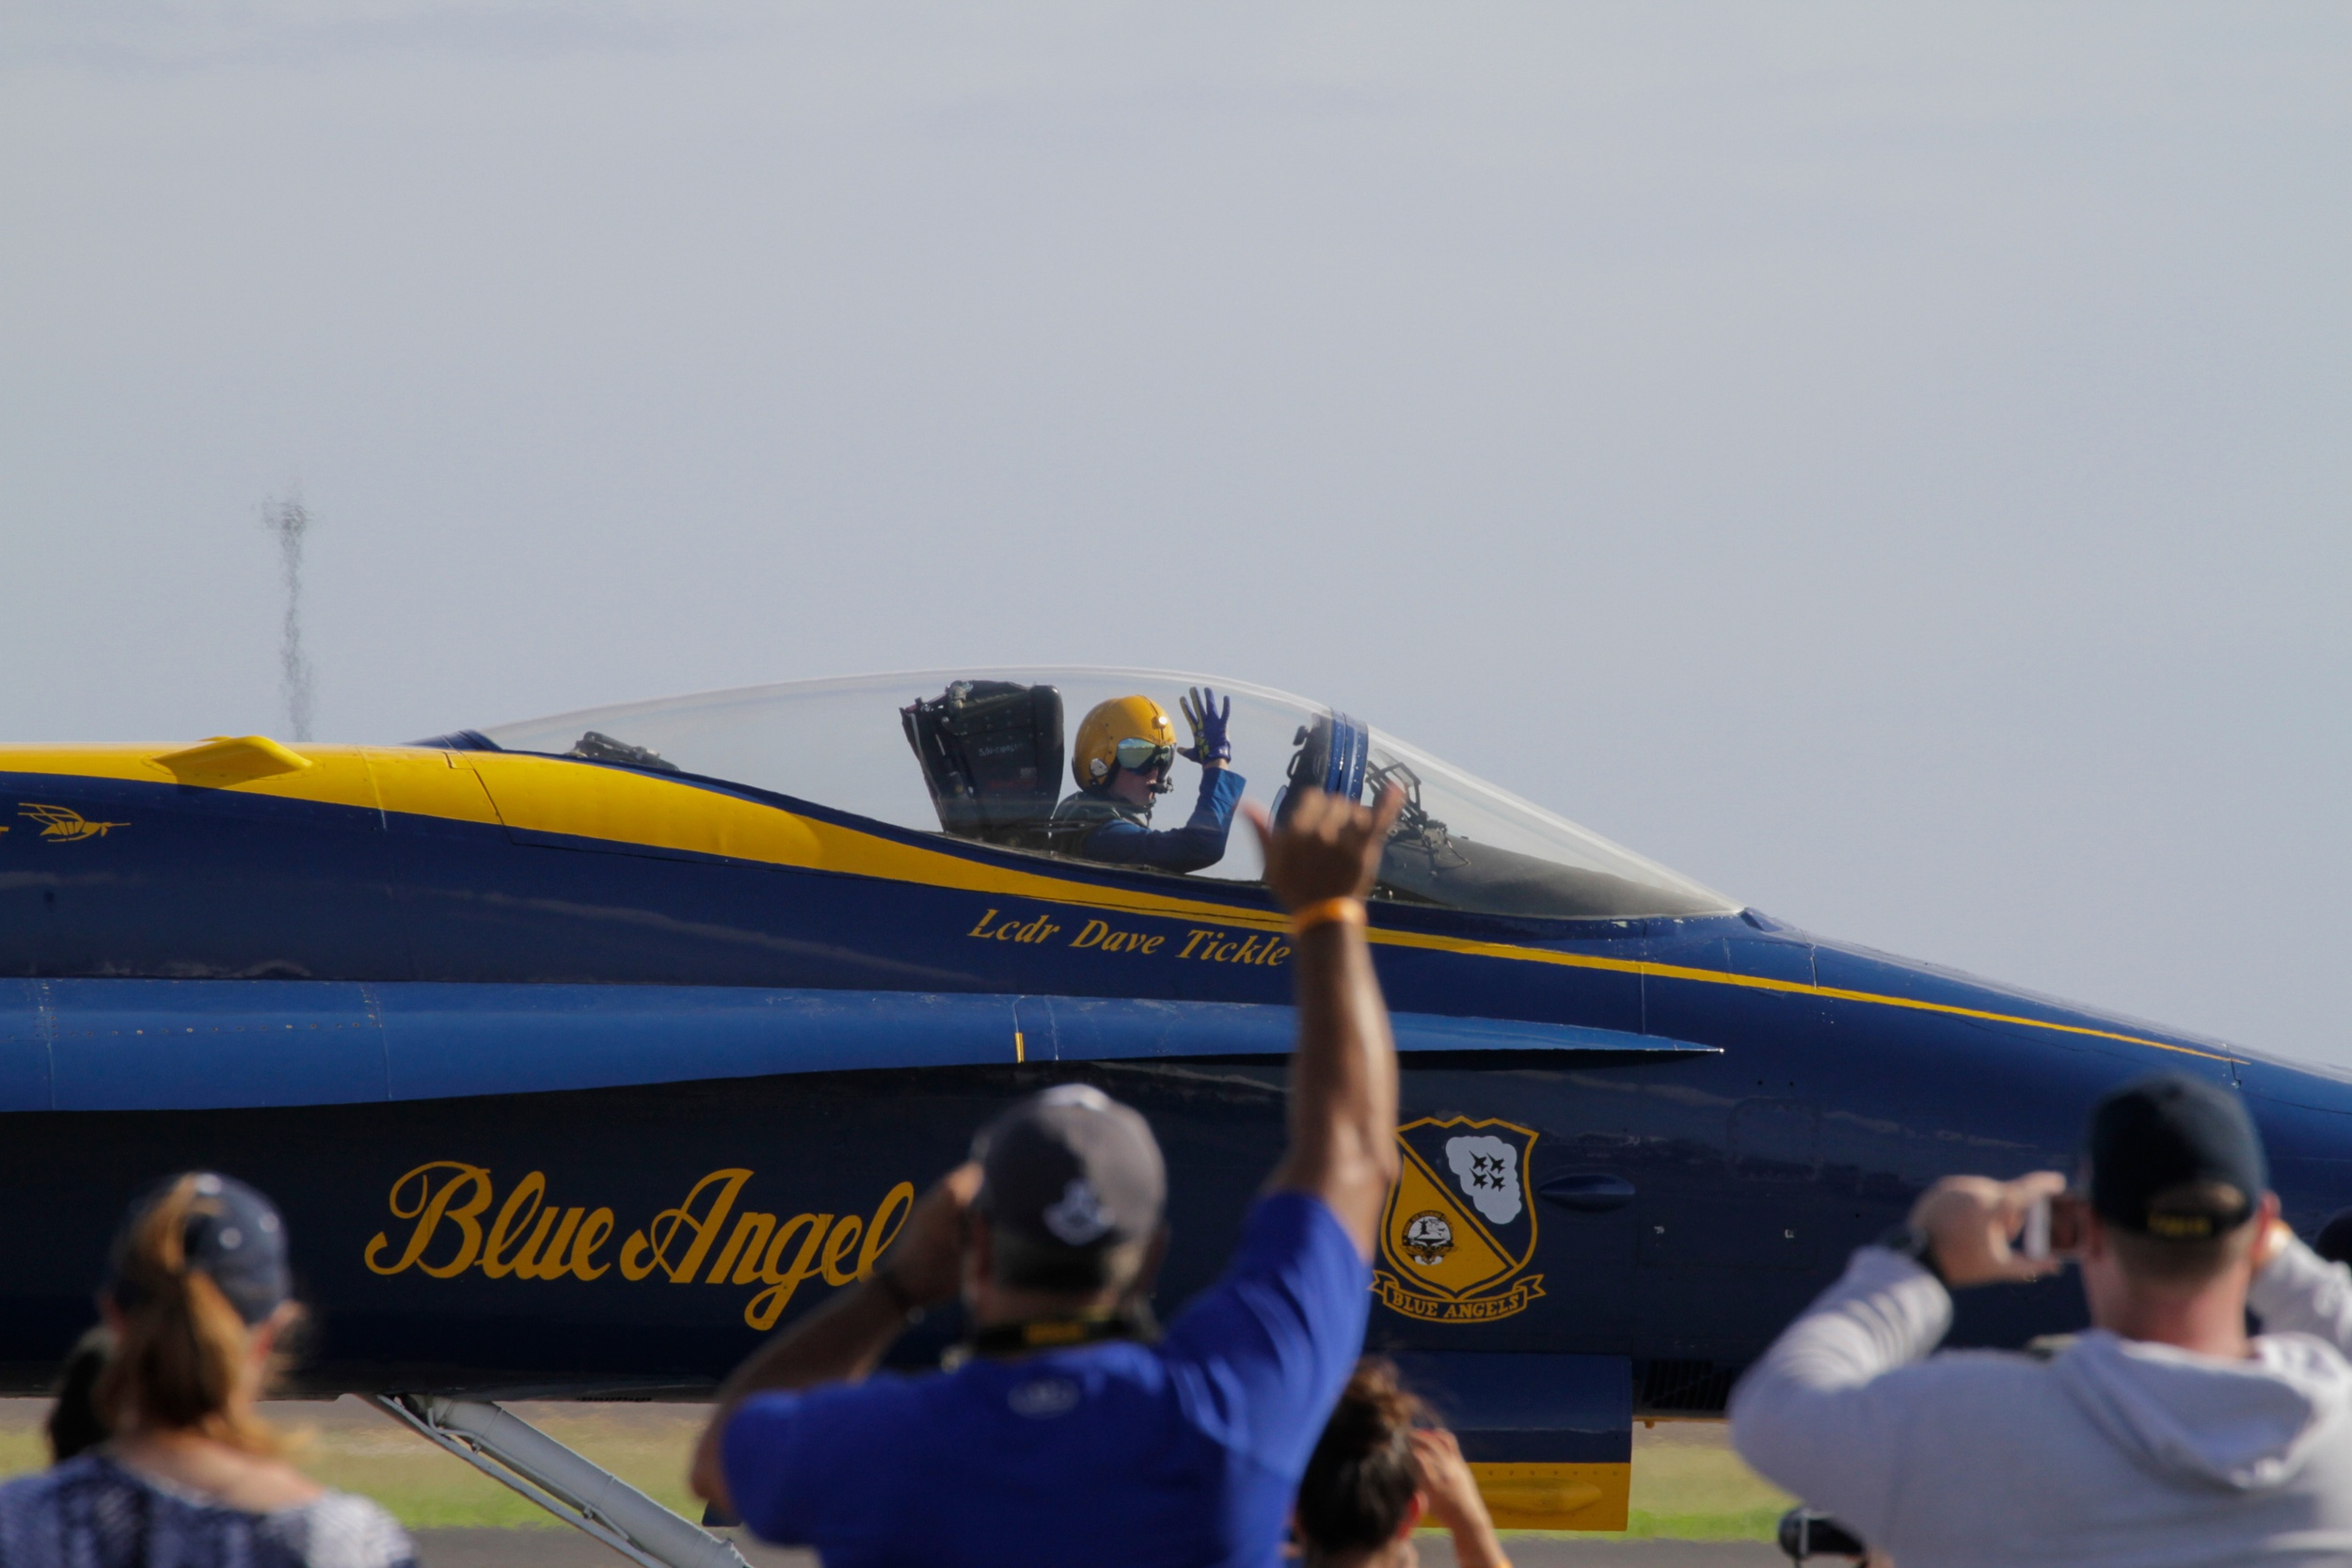 A pilot waves to the crowd and gets a shaka back.